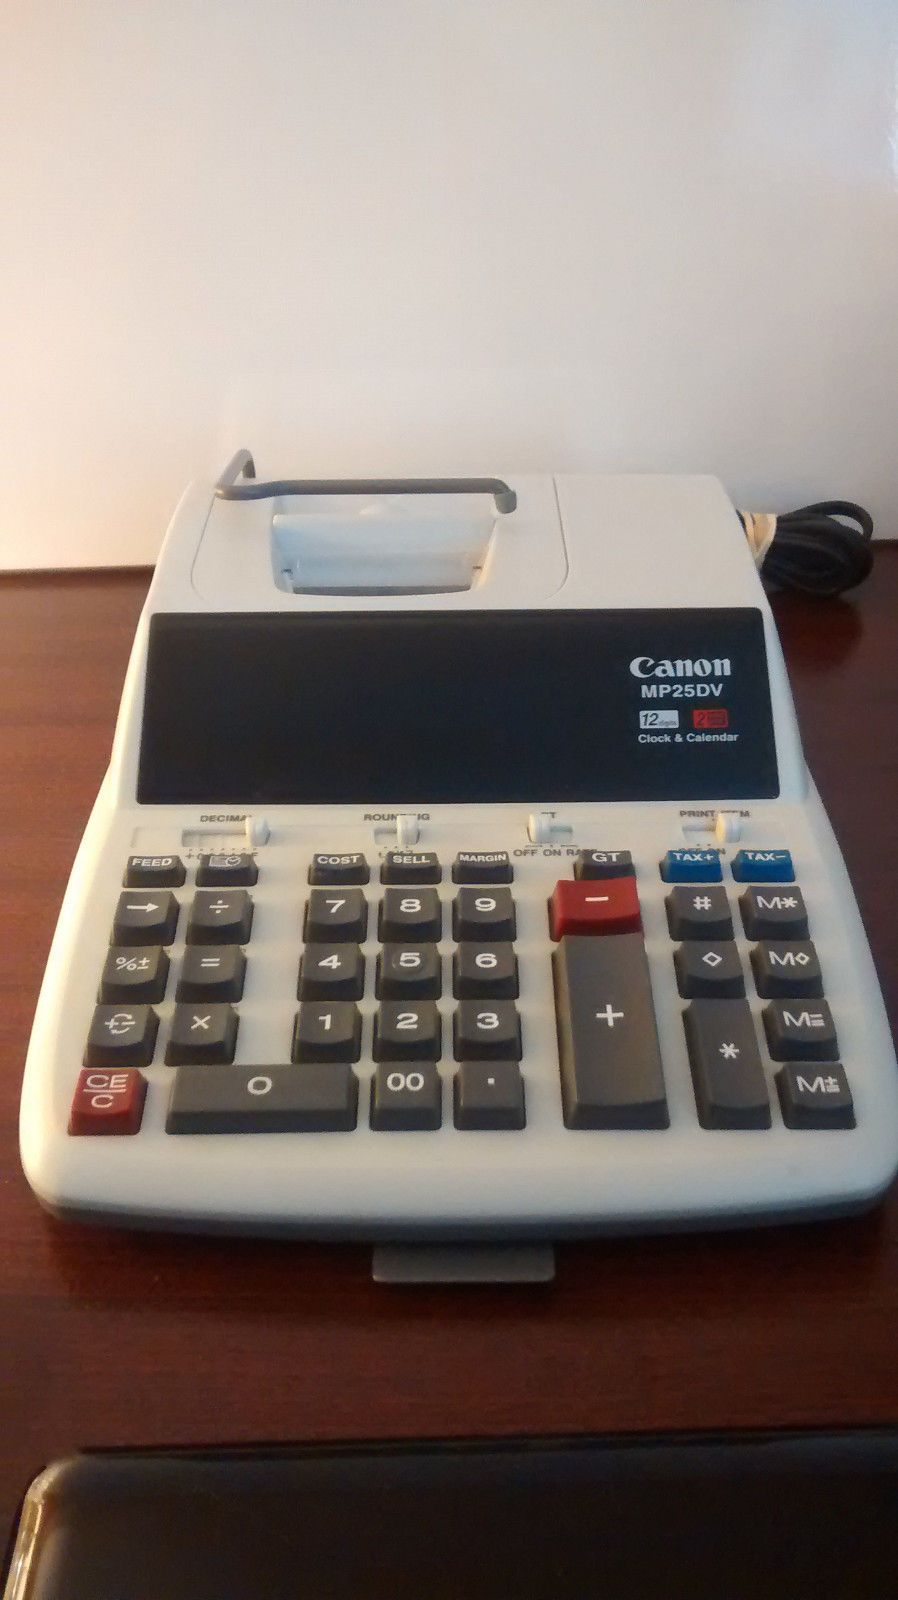 Canon Mp 25dv Printing Calculator 10 Key Adding Machine With Calendar 0038569108714 Ebay Printing Calculators Scientific Calculators Ebay